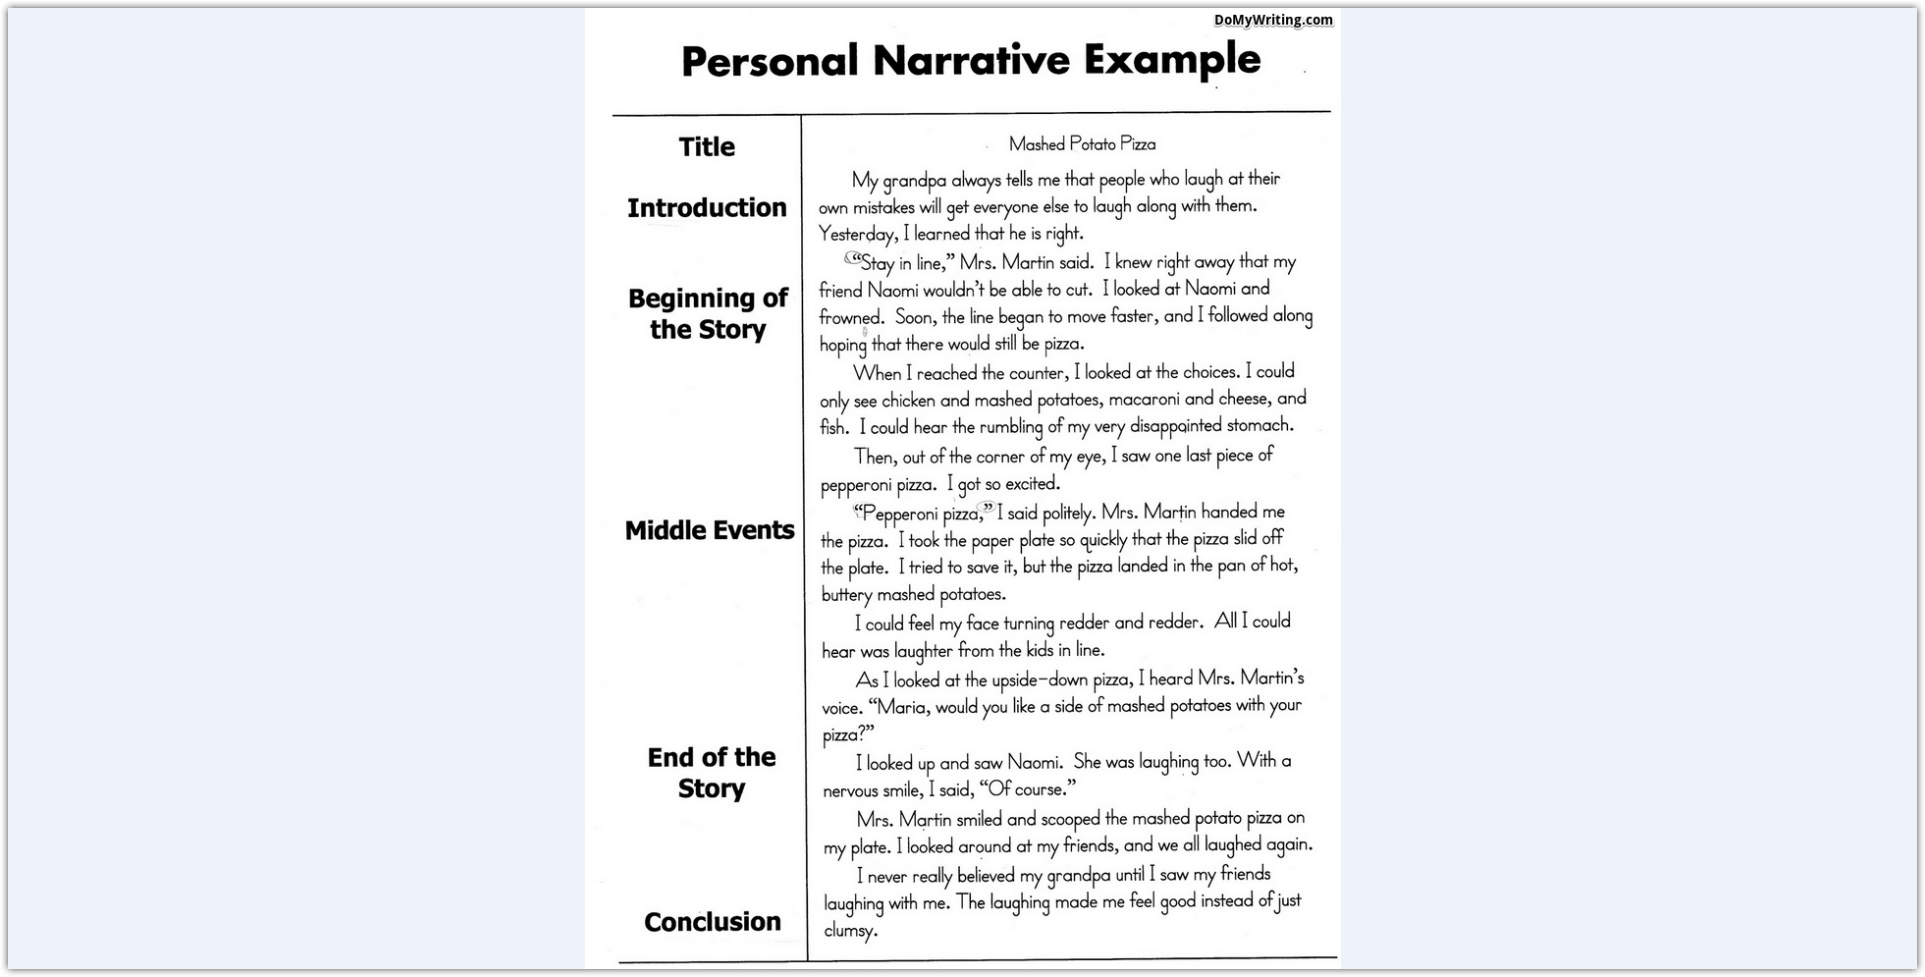 009 Example Narrative Archaicawful Essay Childhood Memory Losing Loved One Excellent Spm Full